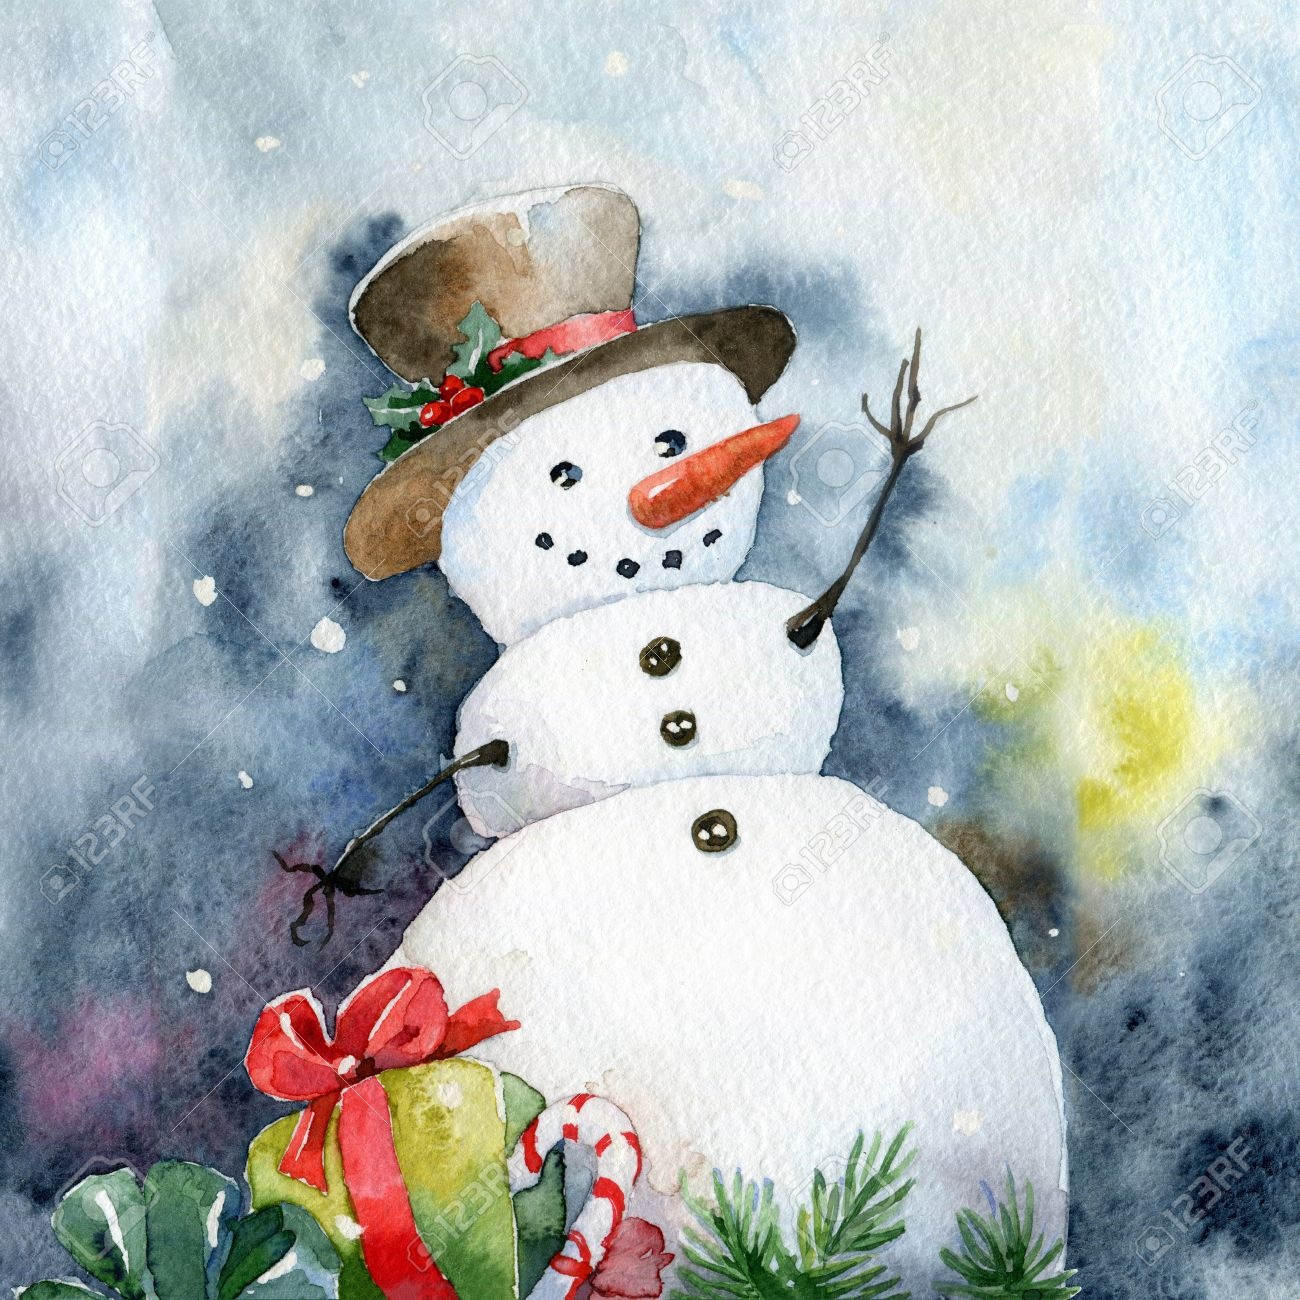 Bright Christmas Card Cheerful Snowman Watercolor Illustrations